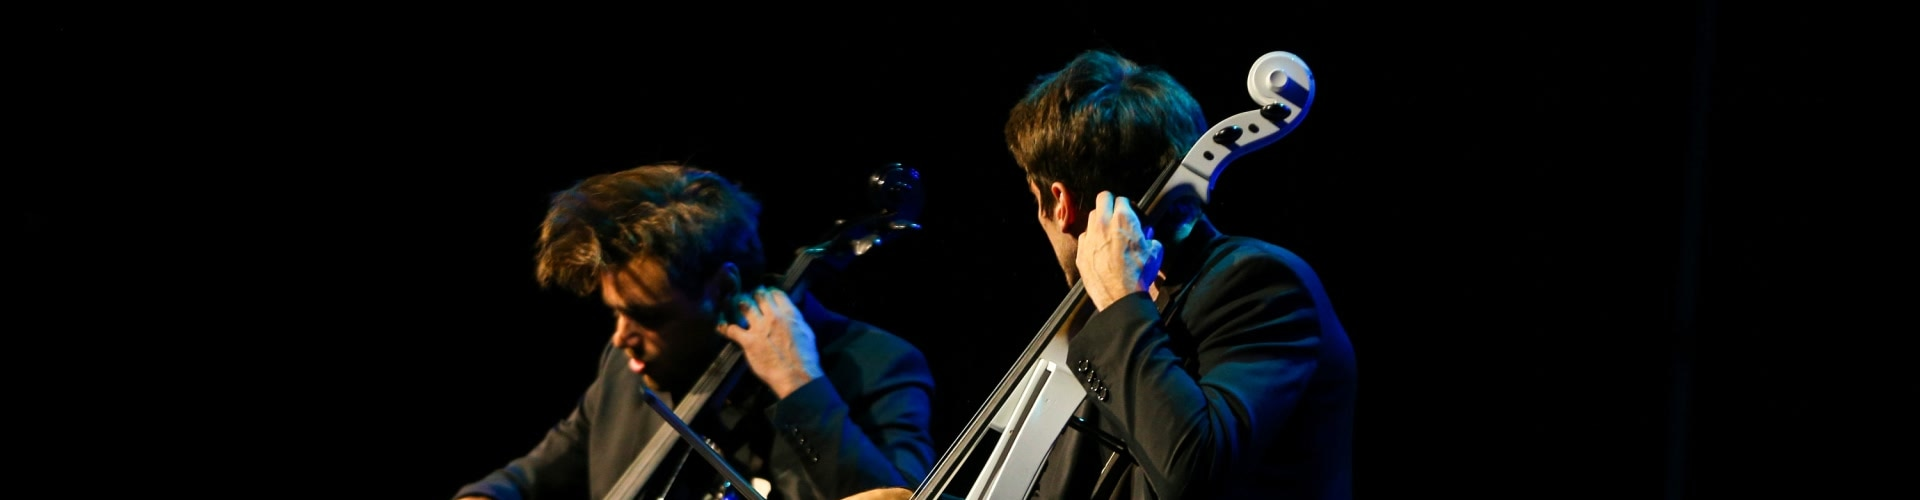 Watch 2Cellos At Sydney Opera House Online